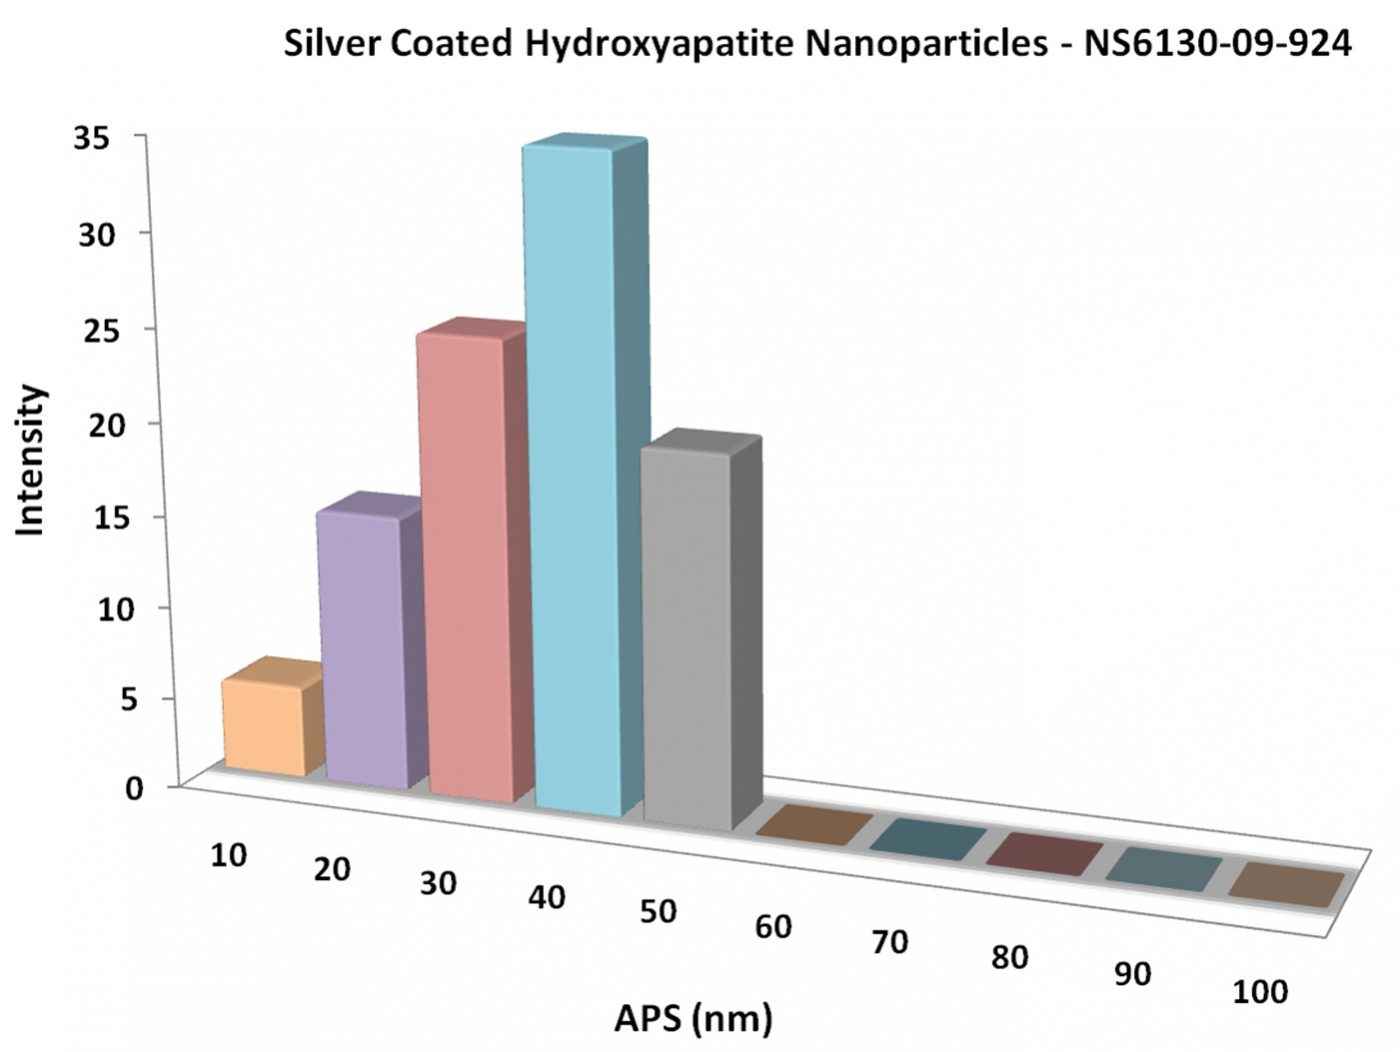 Silver Coated Hydroxyapatite Nanoparticles